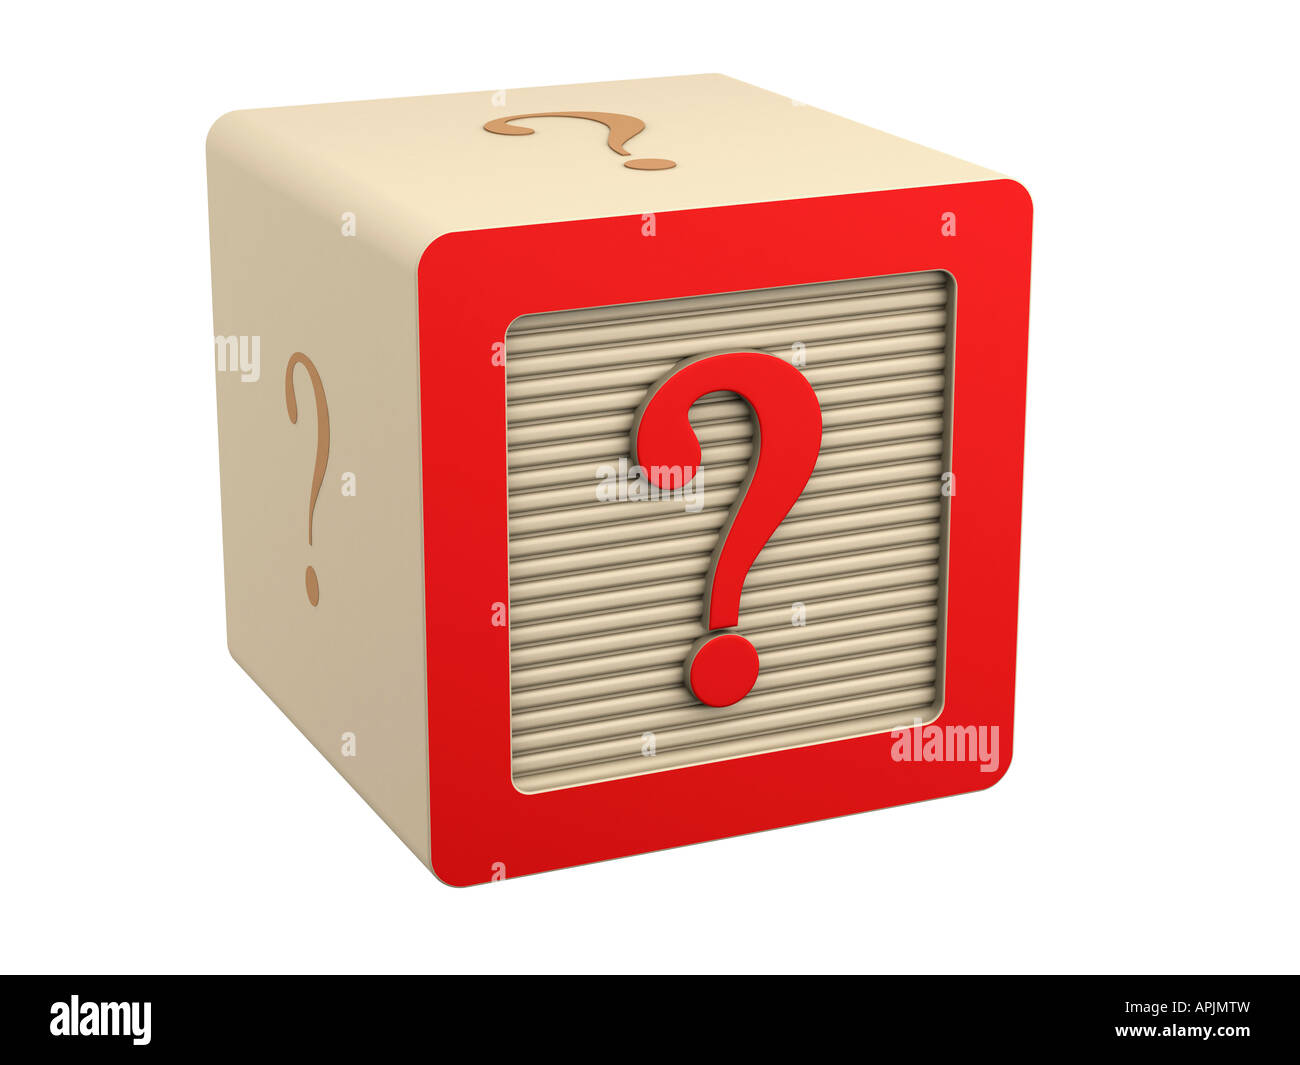 toy wooden block question mark red symbol sign - Stock Image